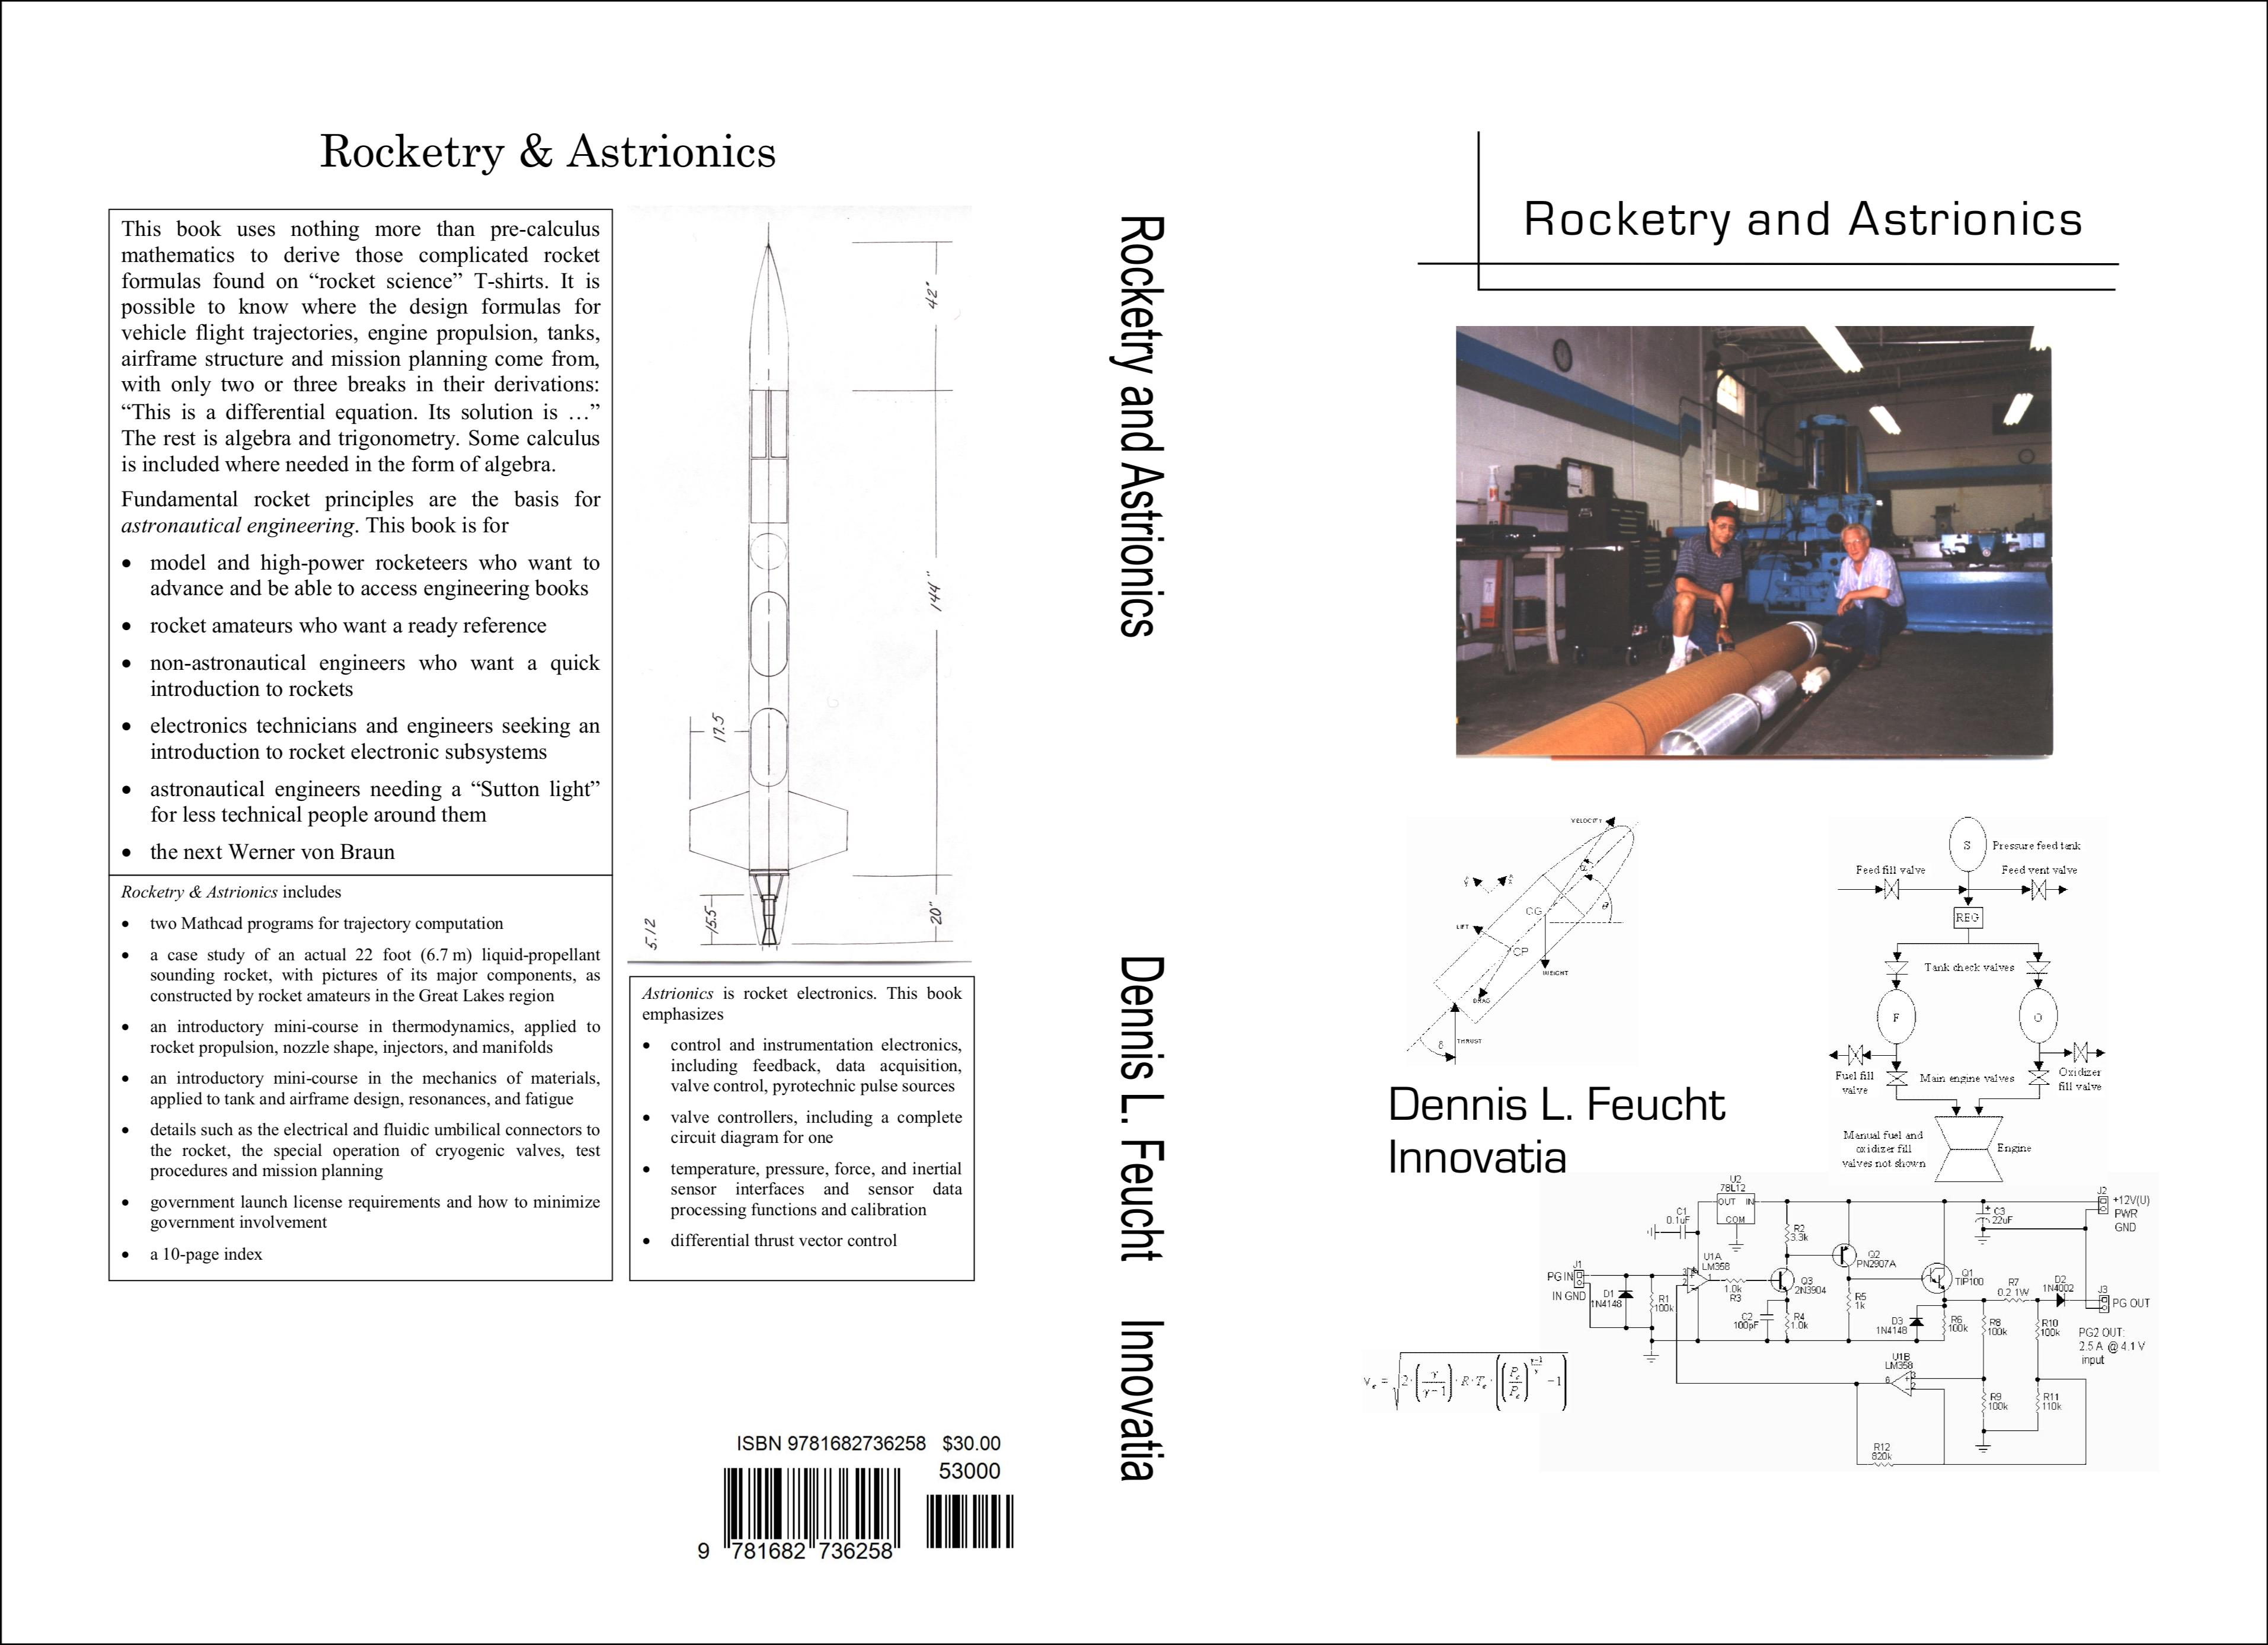 Rocketry and Astrionics cover image